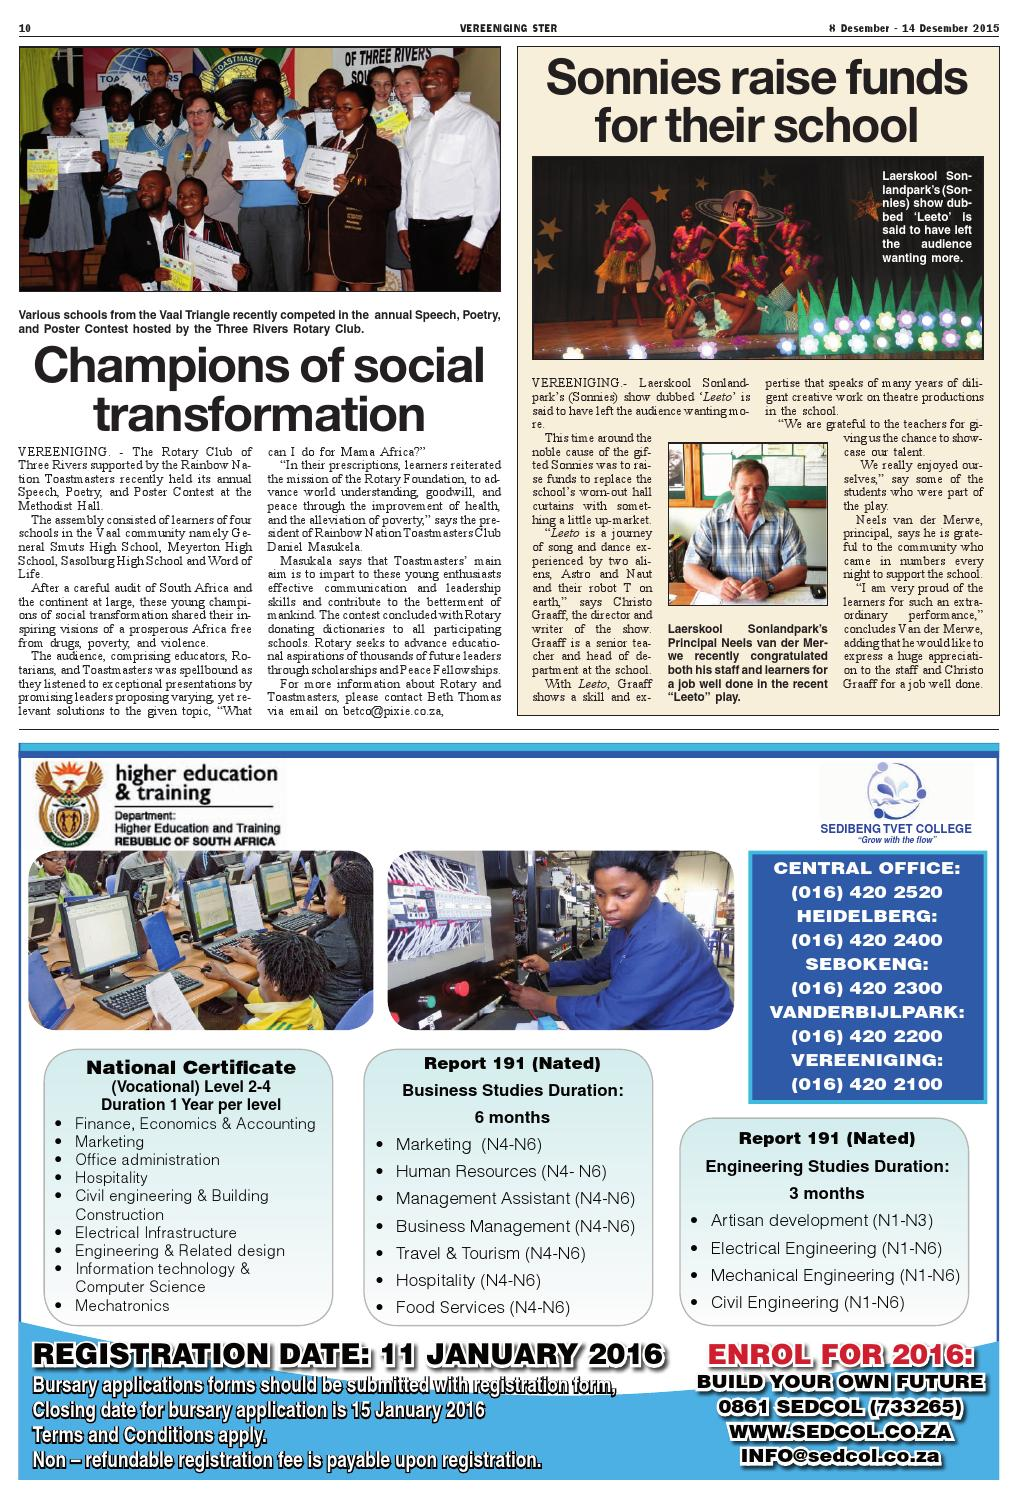 Vereeniging Ster 8 - 14 December 2015 by Vaalweekblad - issuu